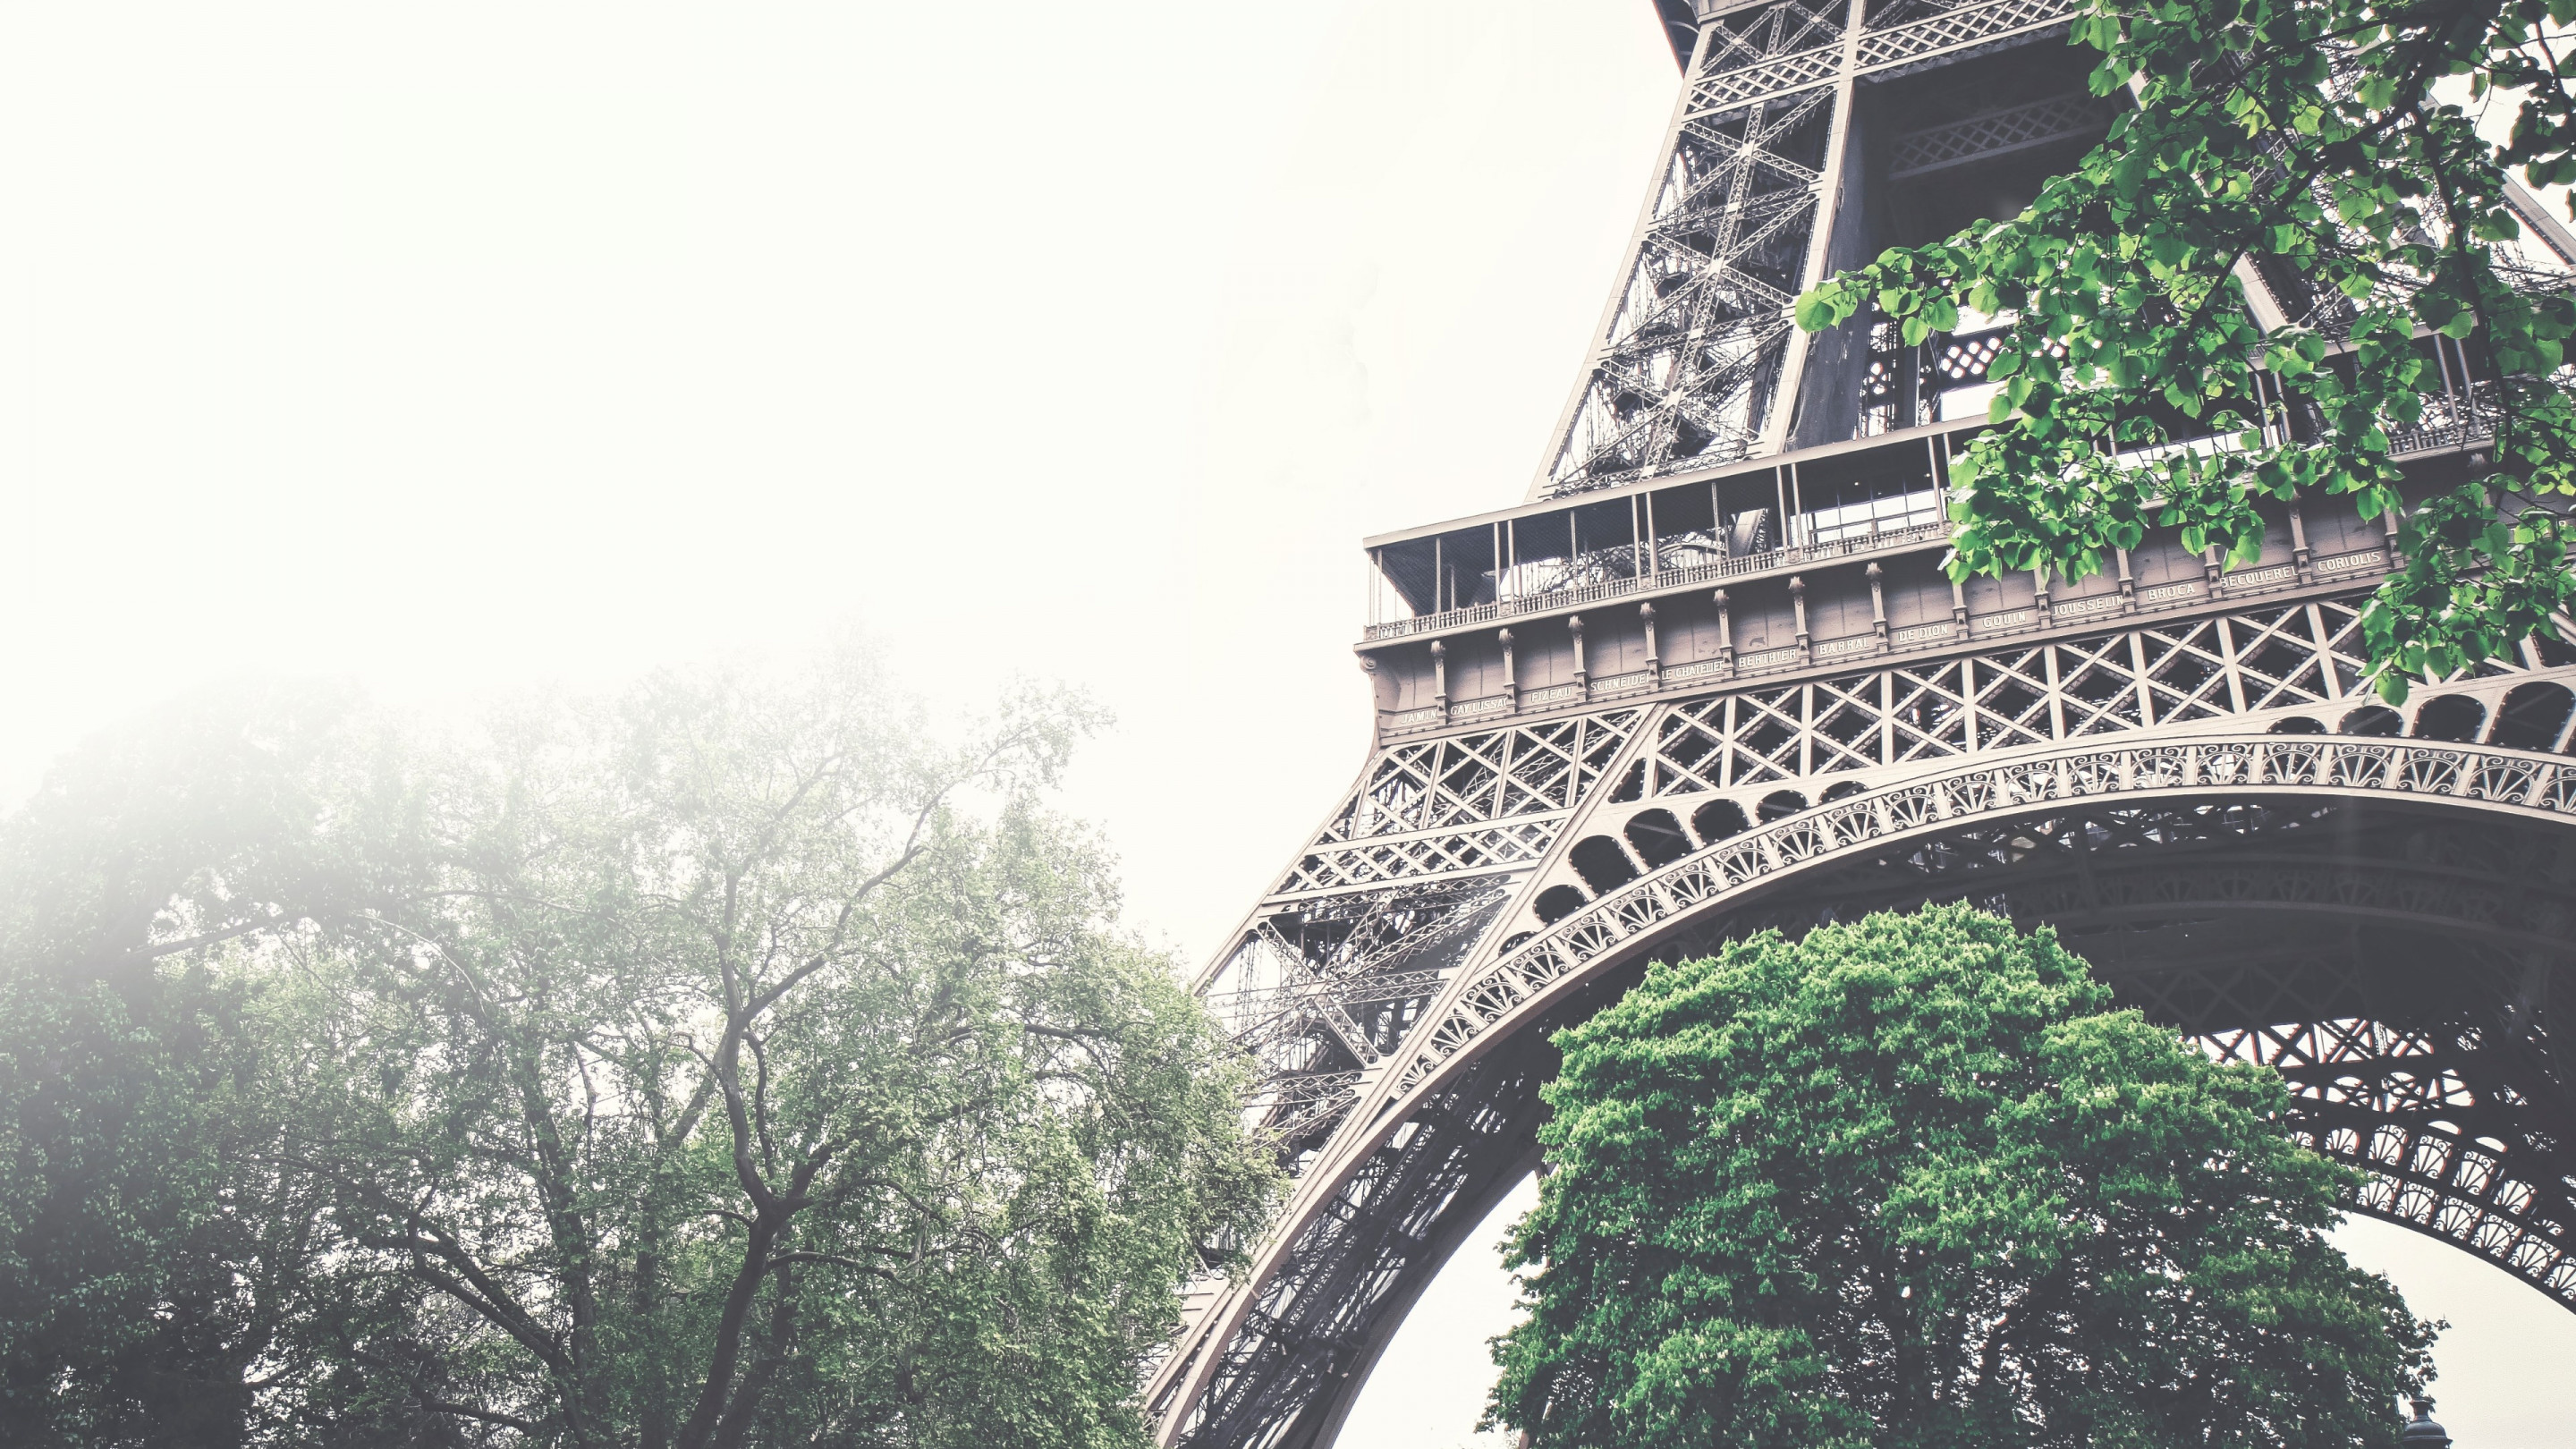 Tour Eiffel in a foggy day wallpaper 2880x1620